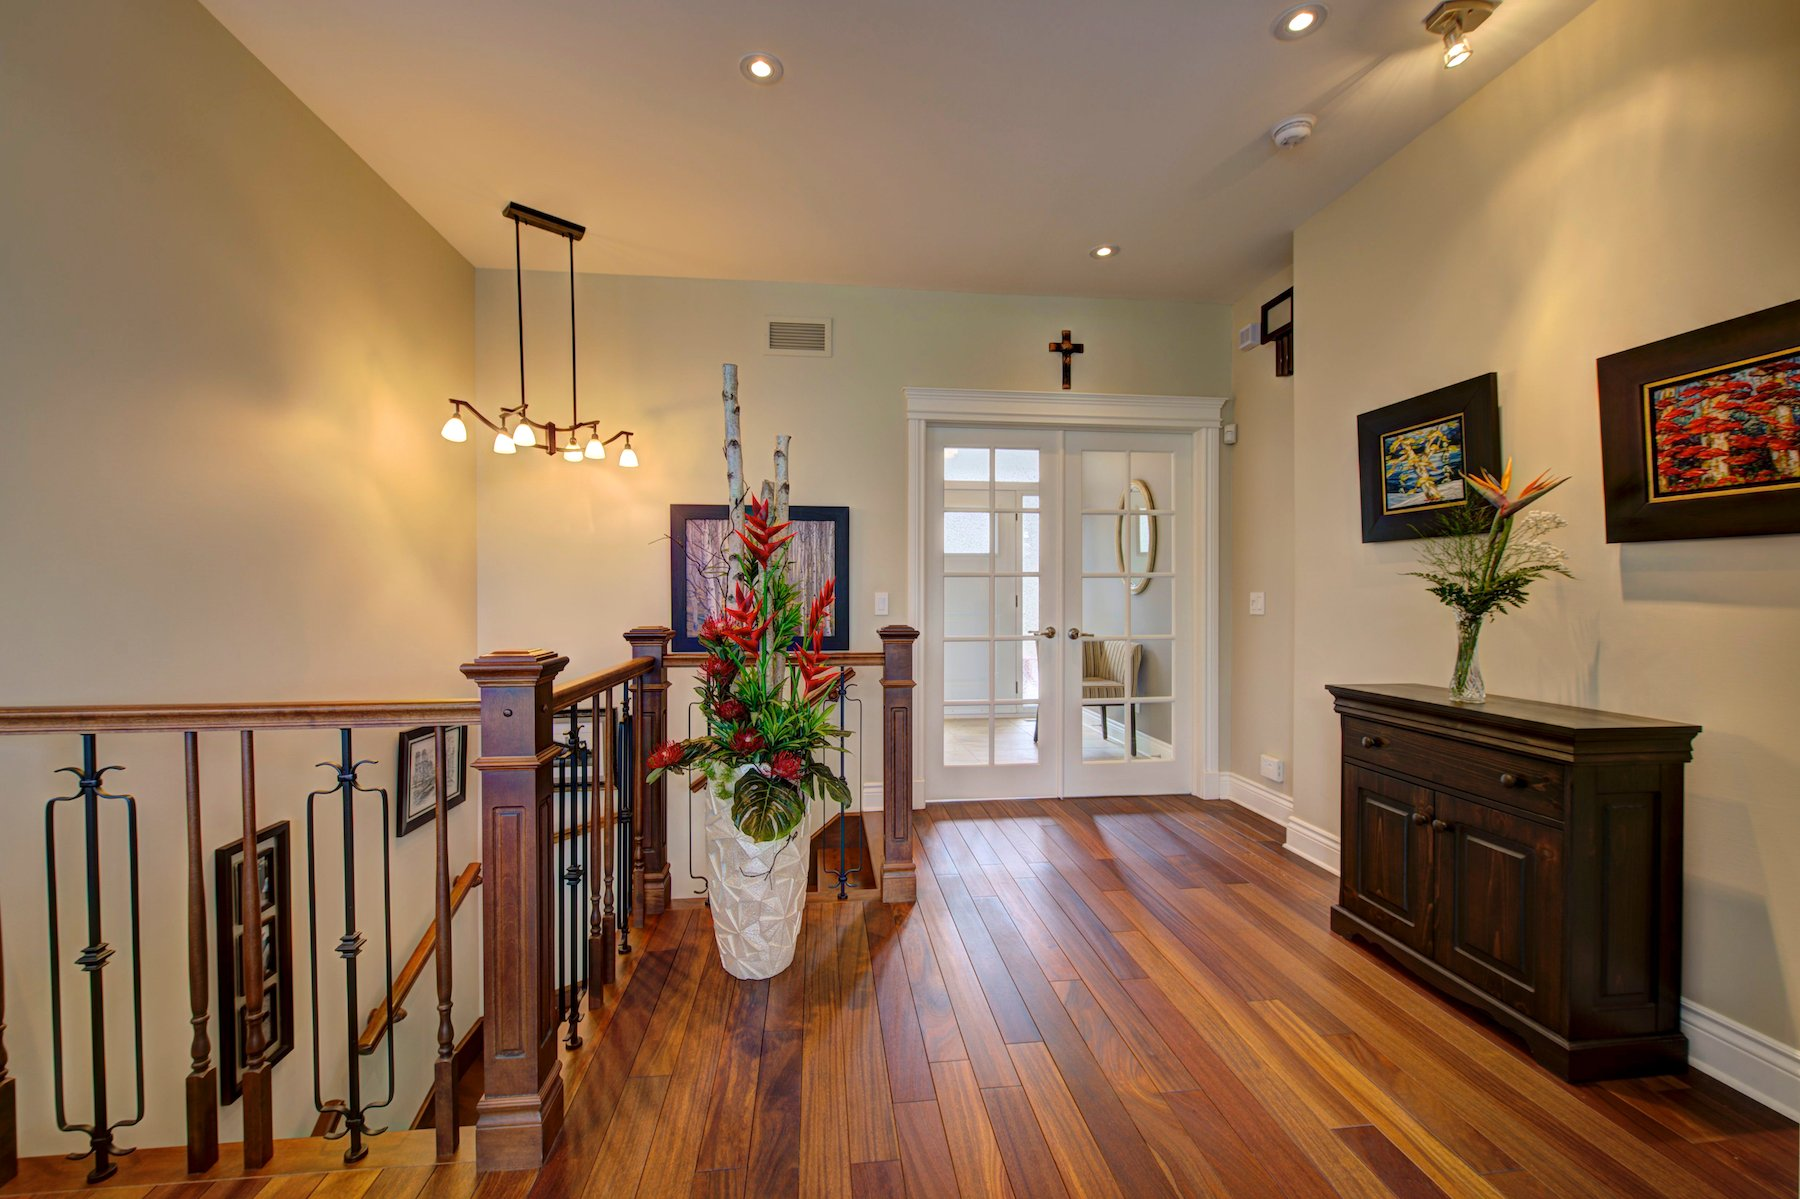 House for sale, Wentworth